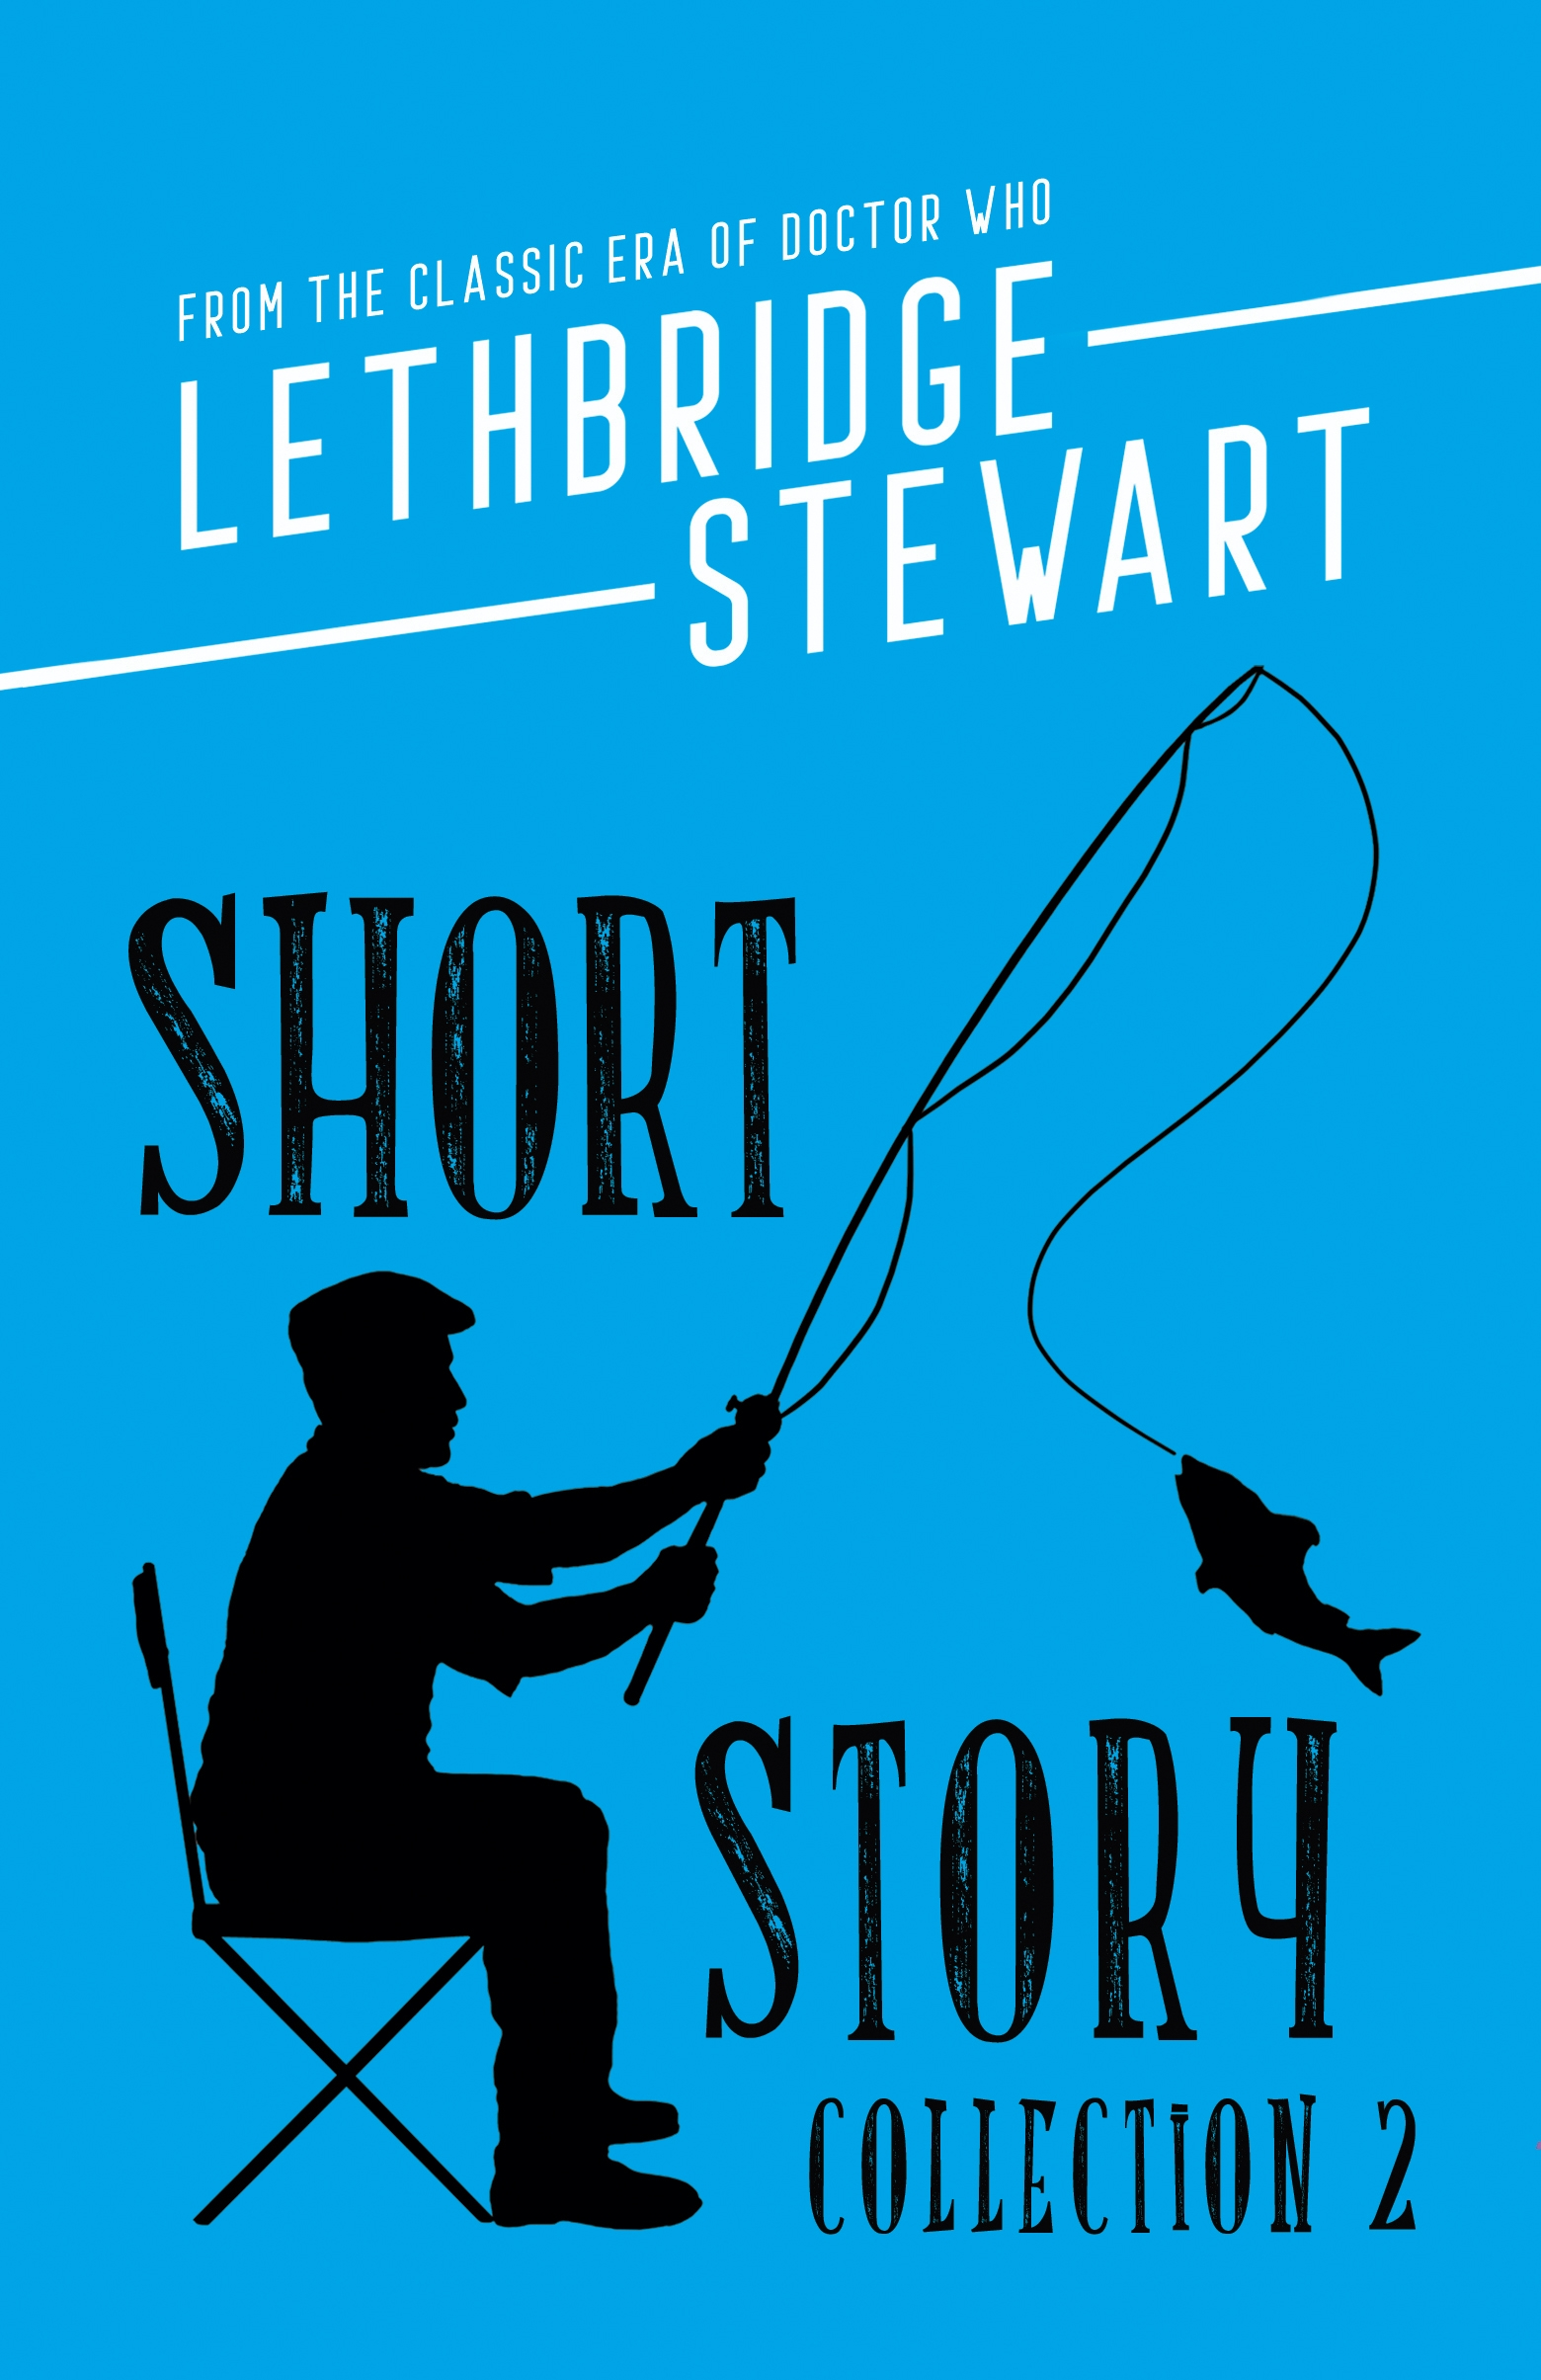 Lethbridge-Stewart: Short Story Collection 2 (Credit: Candy Jar Books)